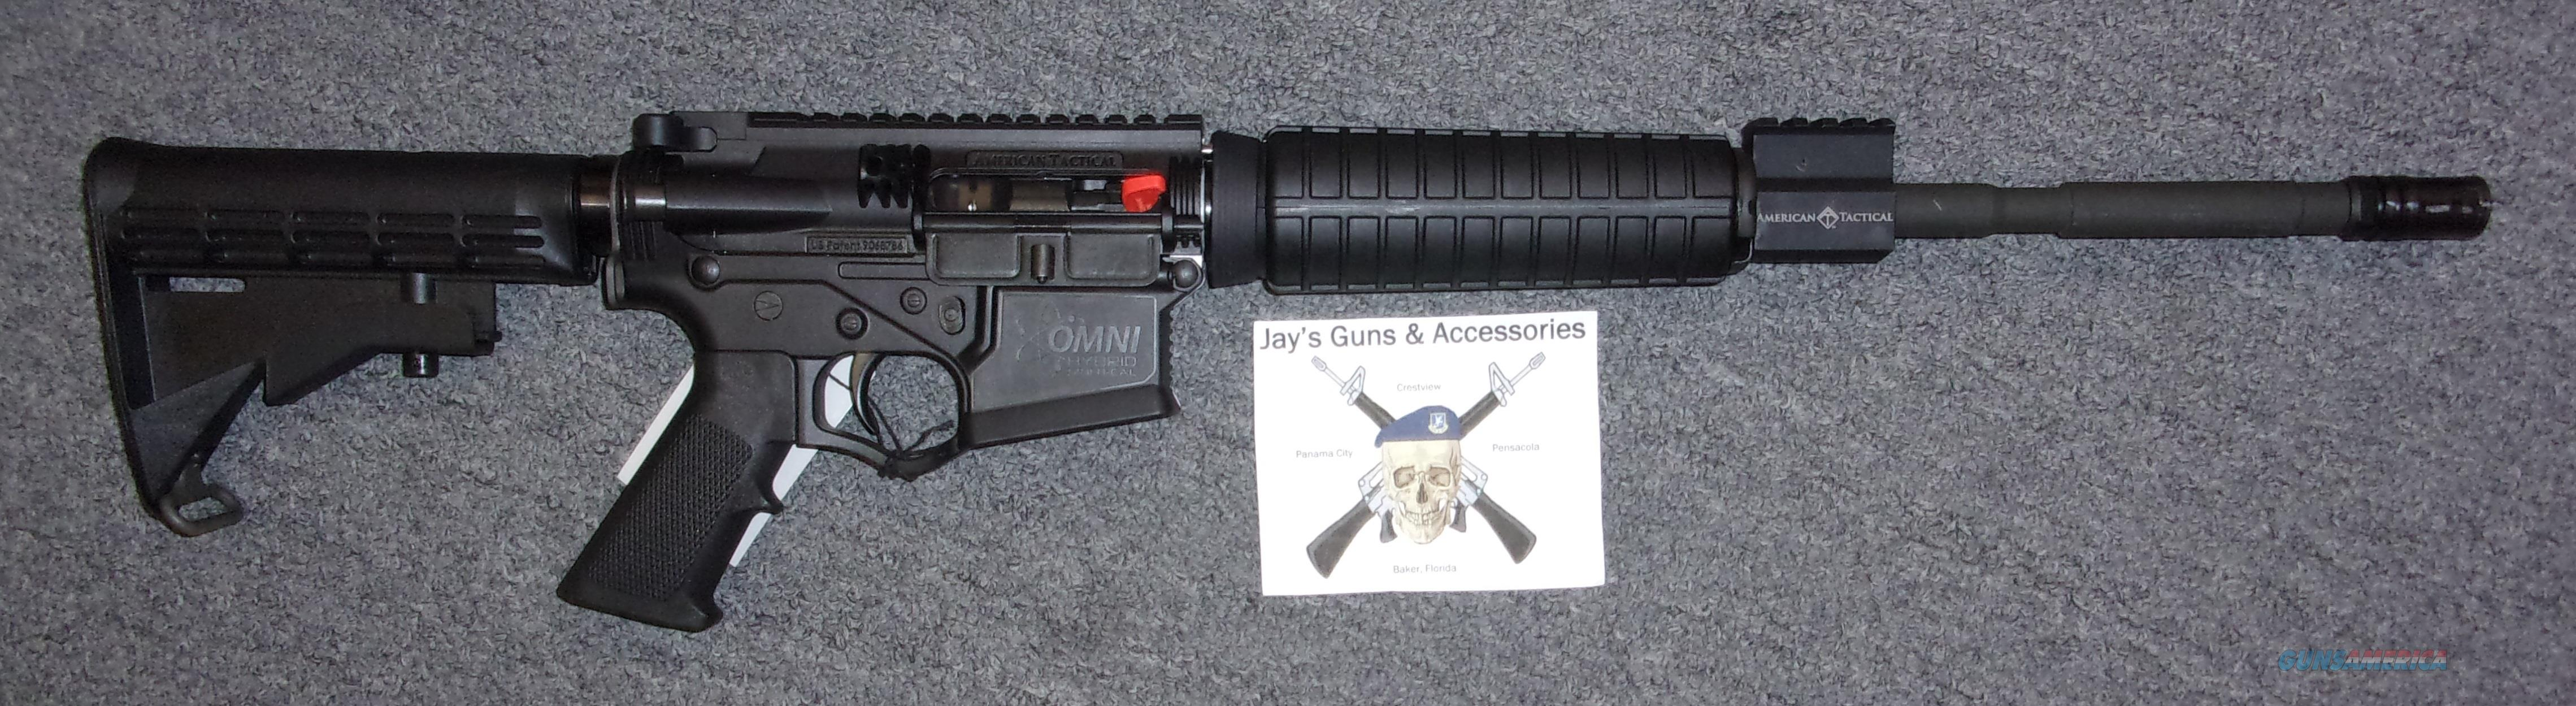 American Tactical OMNI Maxx Hybrid  Guns > Rifles > American Tactical Imports Rifles